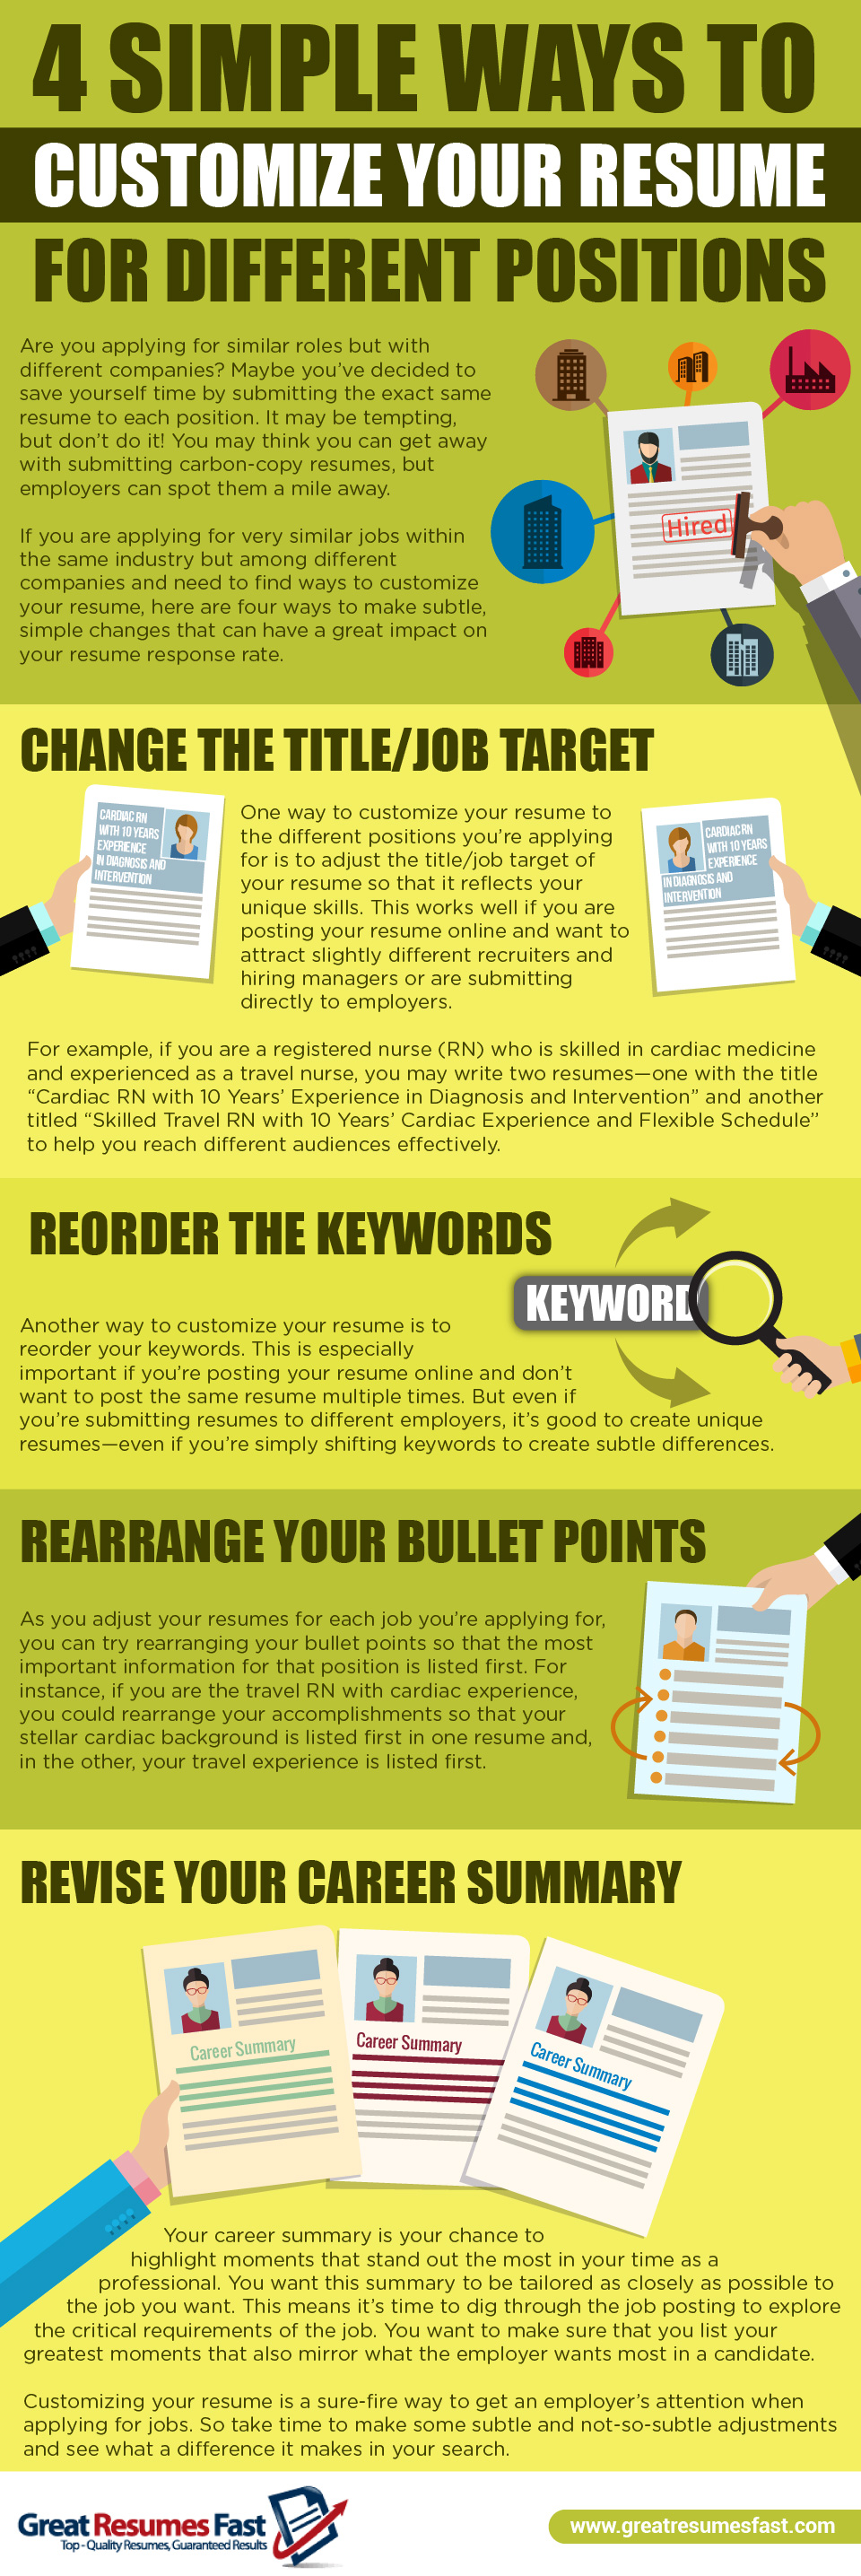 Infographic 4 Simple Ways To Customize Your Resume For Different